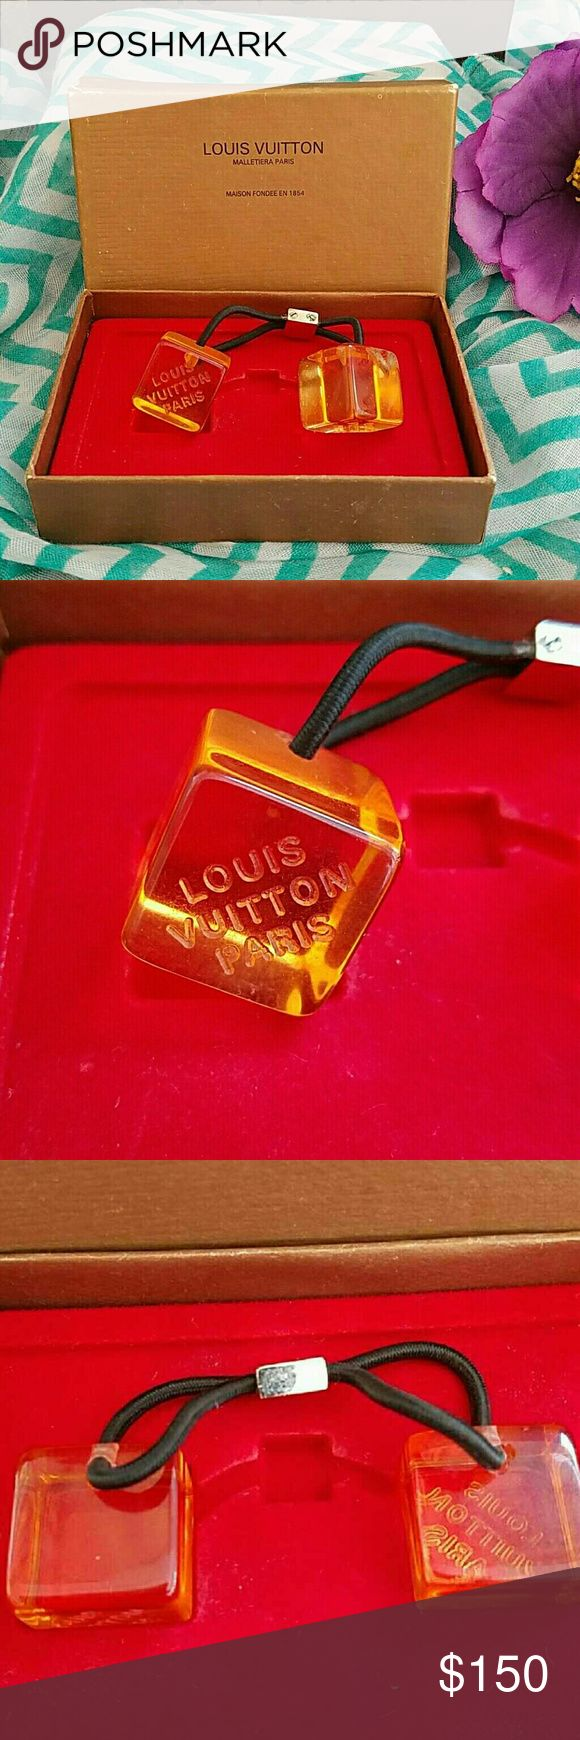 RARE! LOUIS VUITTON HAIR CUBES AUTHENTIC VINTAGE LOUIS VUITTON HAIRCUBES AMBER COLOR, PALLADIUM HARDWARE AND SCREWS. ORIGINAL EPI STORAGE BOX INCLUDED BOX HAS SCRATCHES AND SCUFFS, CUBES HAVE SUPERFICIAL SCRATCHES IN GOOD USED VINTAGE CONDITION! Louis Vuitton Accessories Hair Accessories